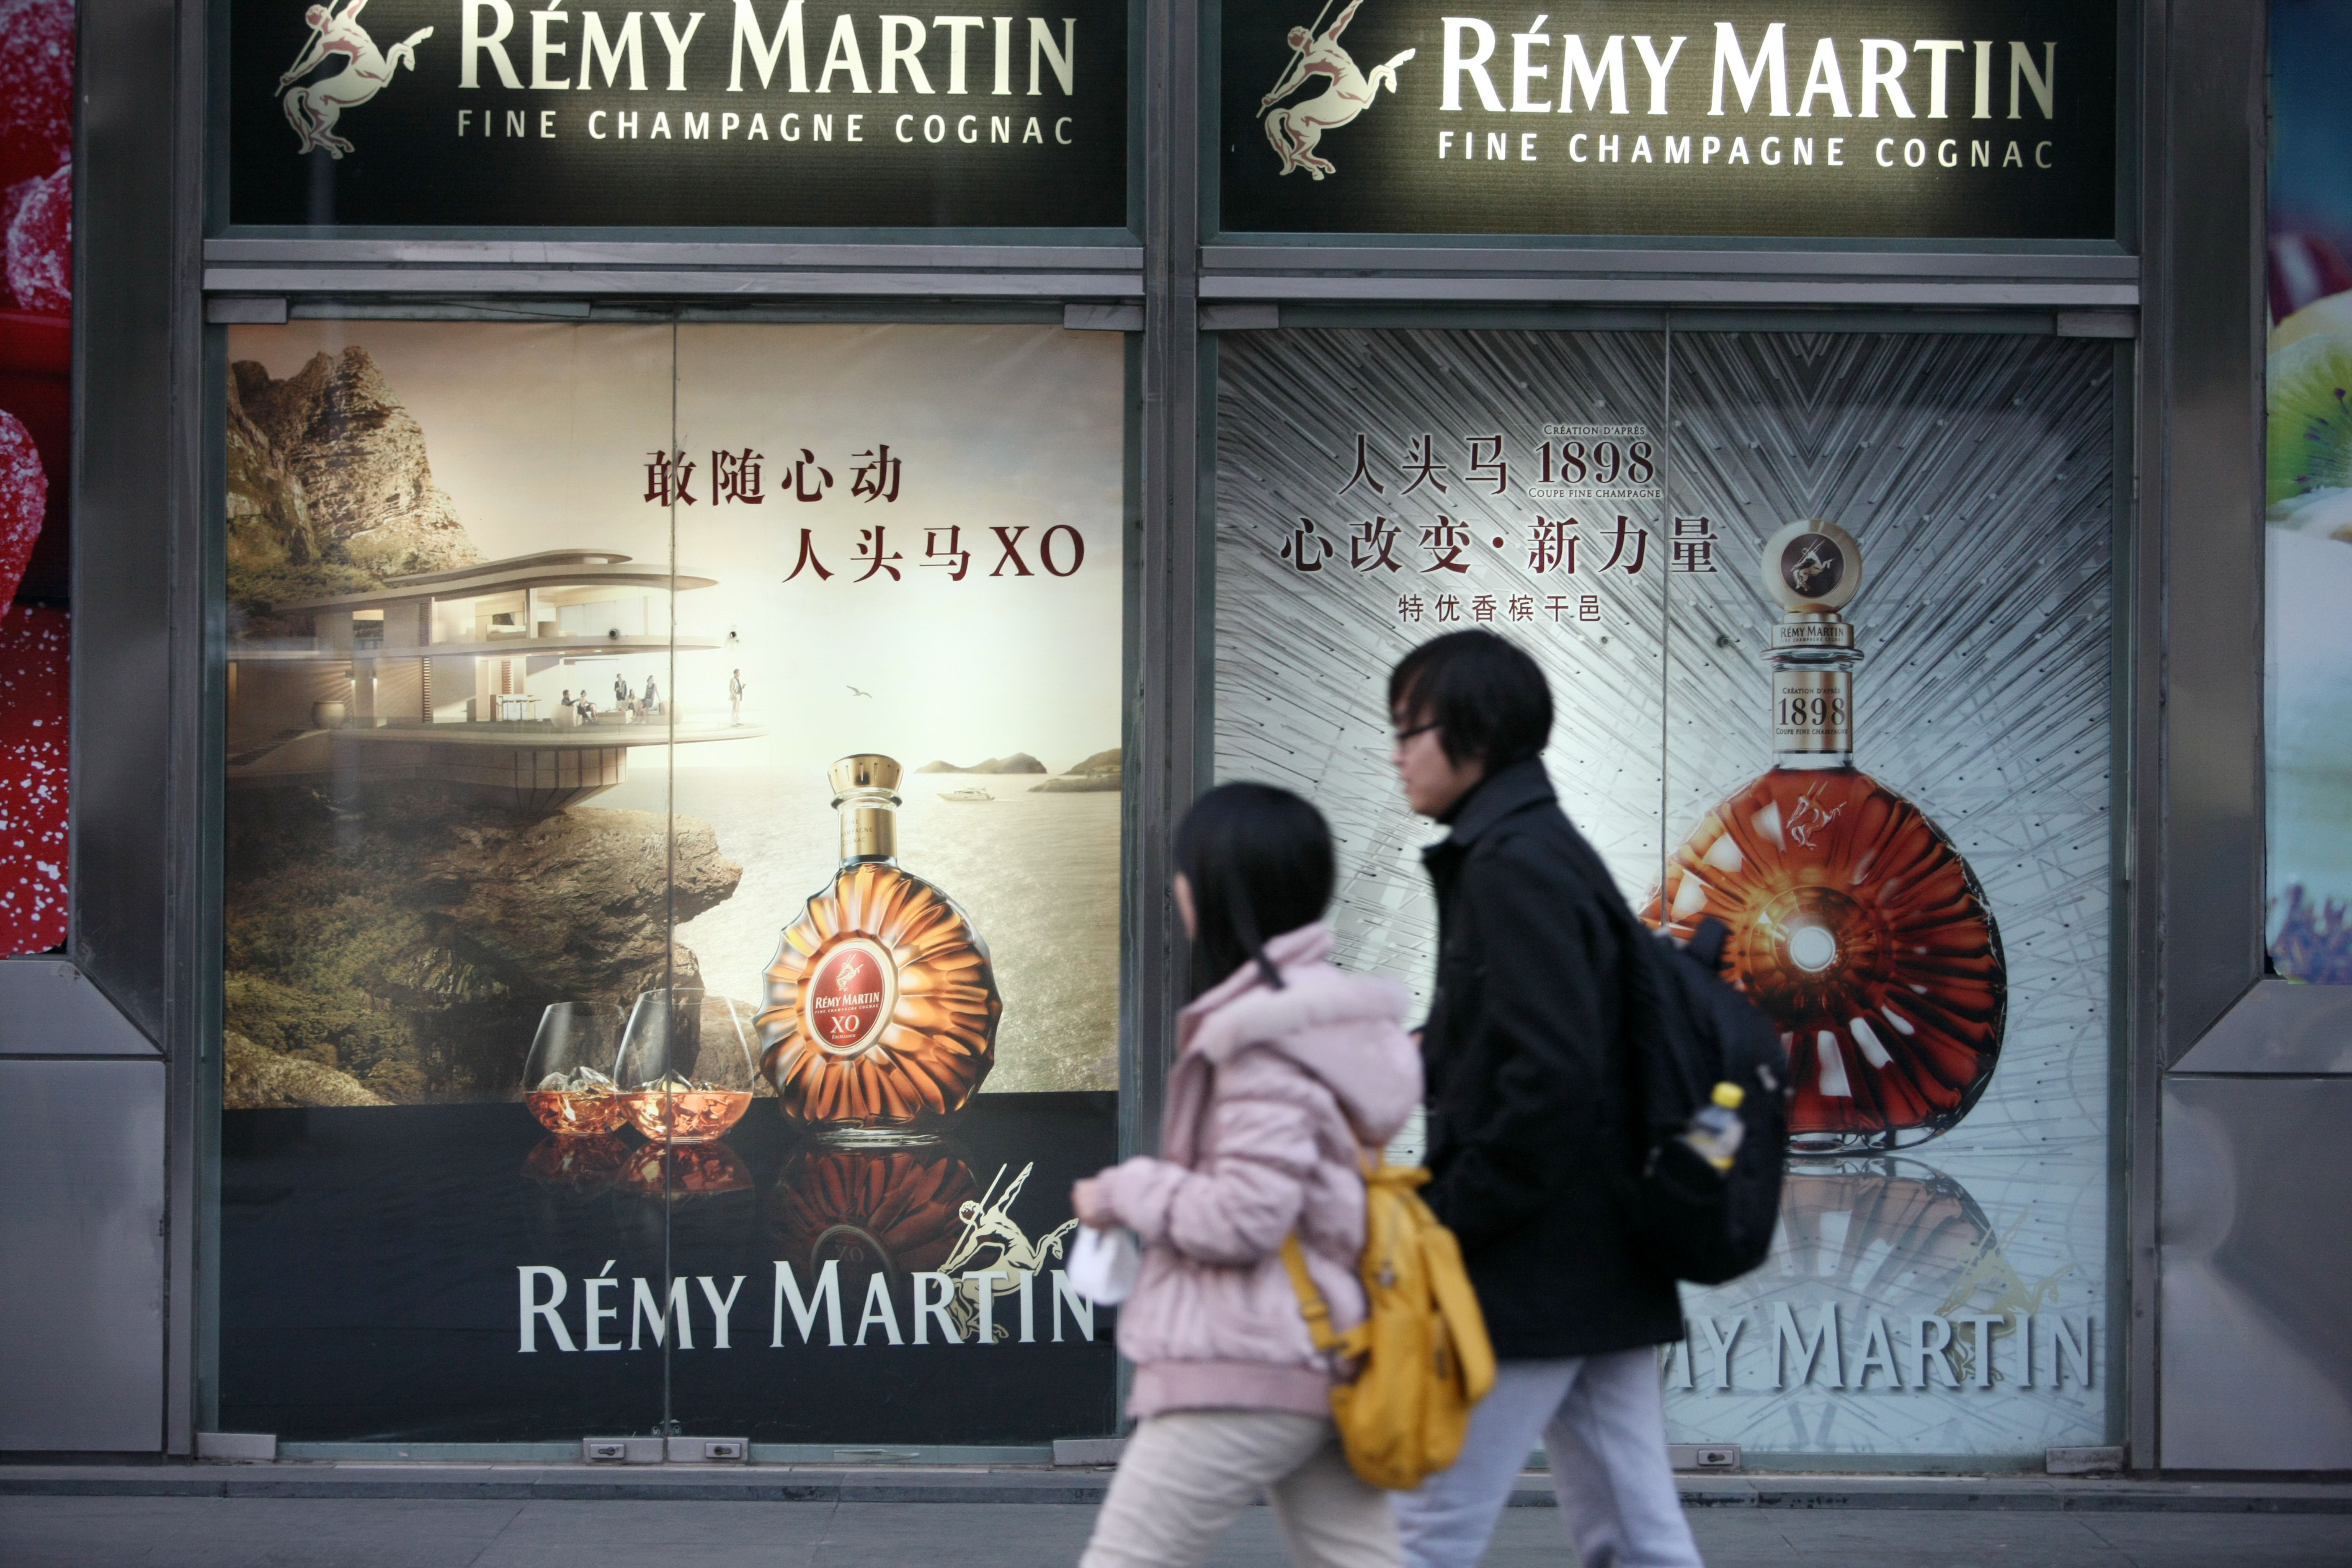 Chinas prostitution crackdown hits cognac